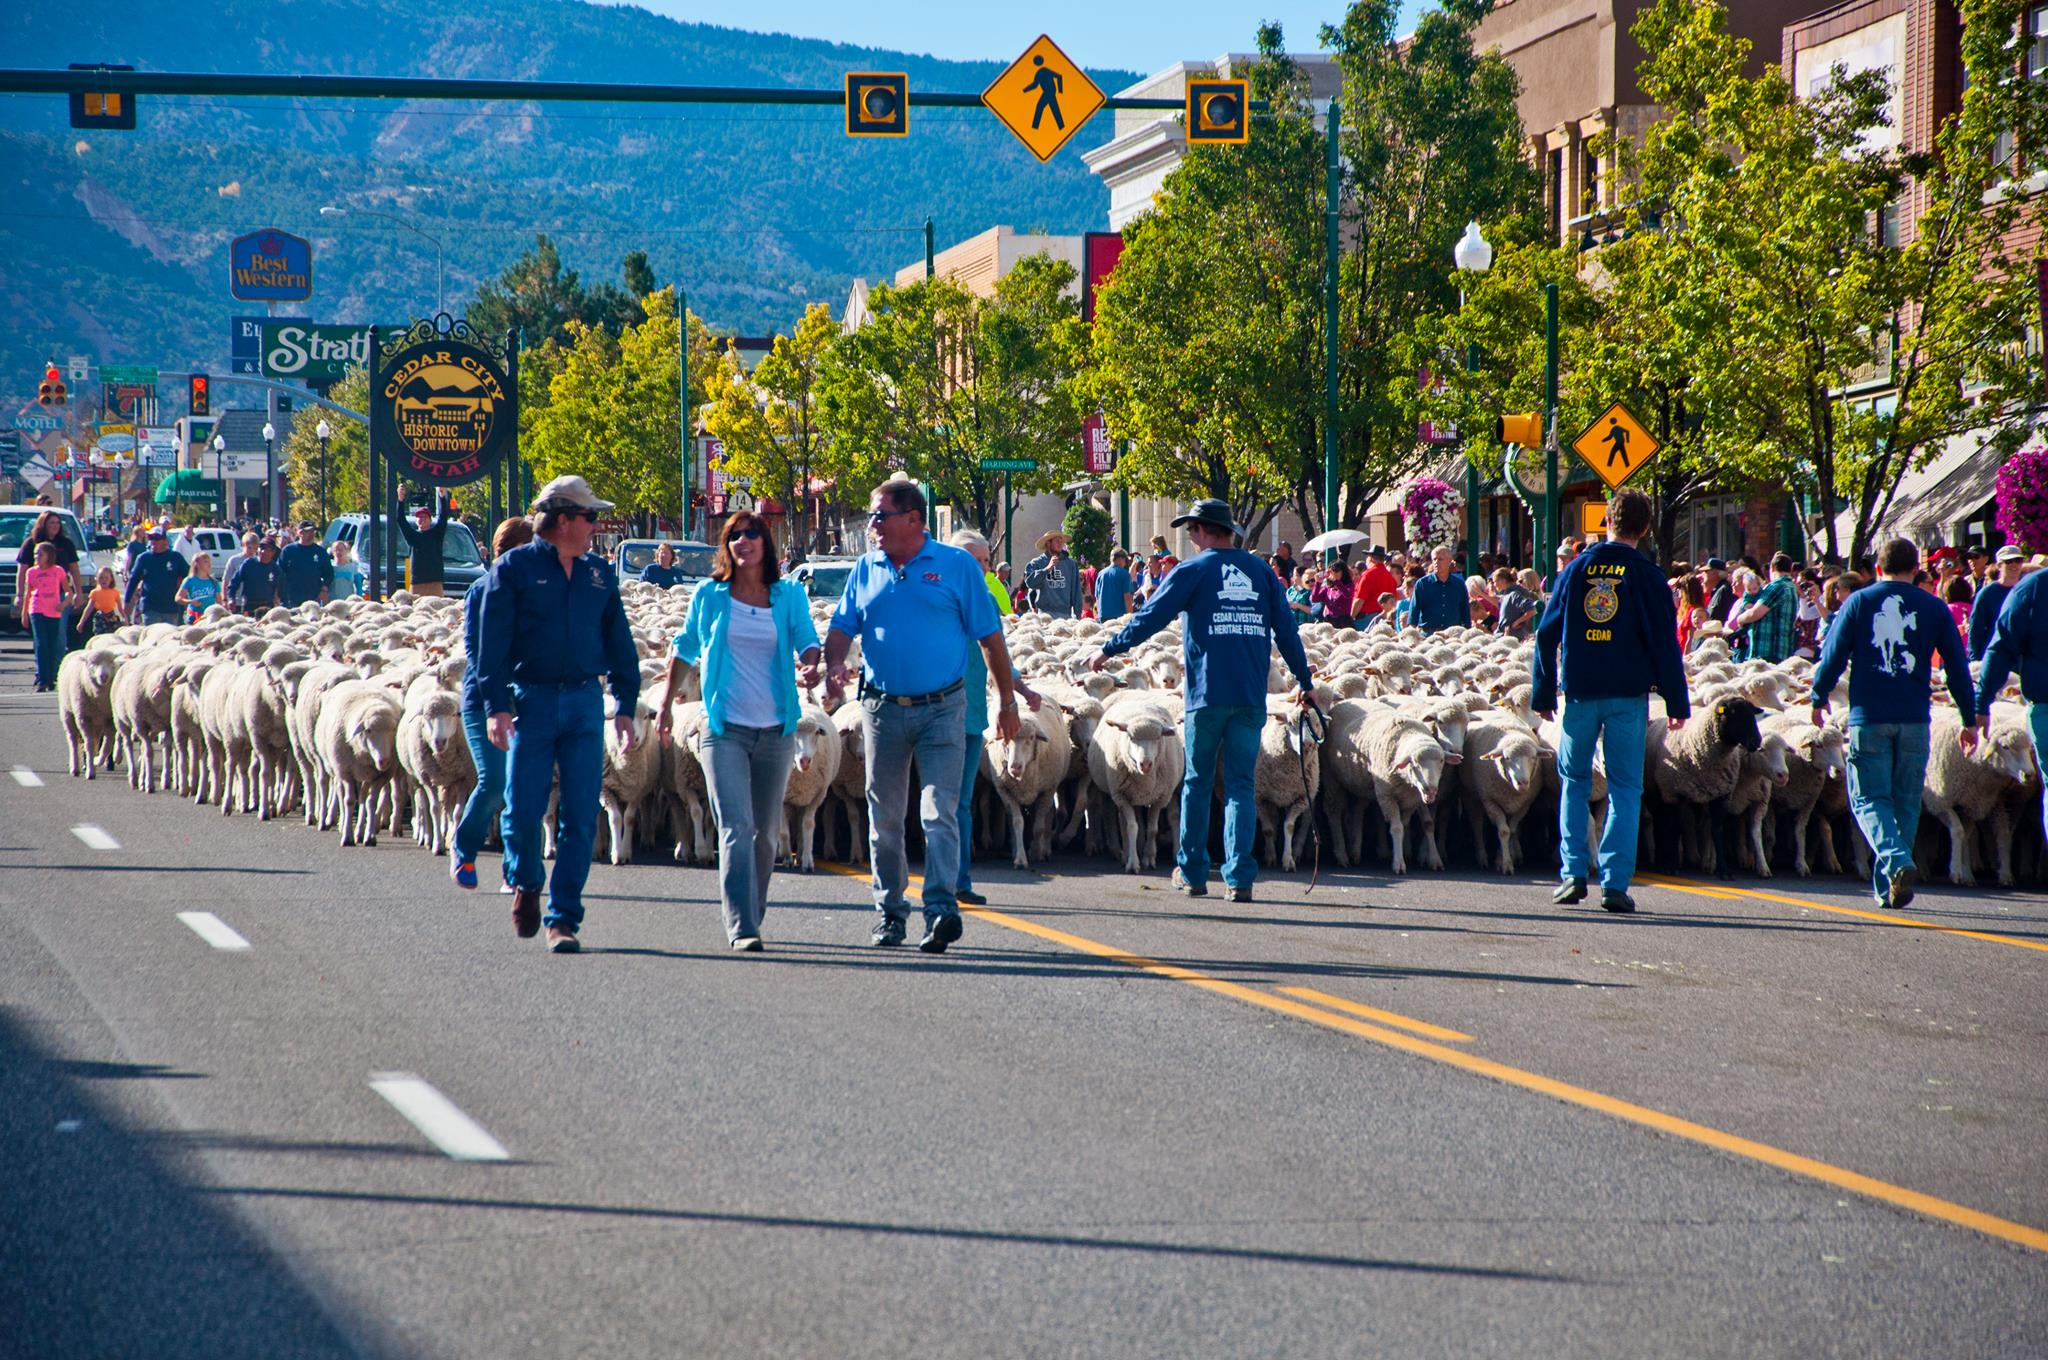 A flock of sheep travels down Cedar City's Main Street during a past Livestock Festival, date unspecified| photo courtesy of Sam El Halta, St. George News